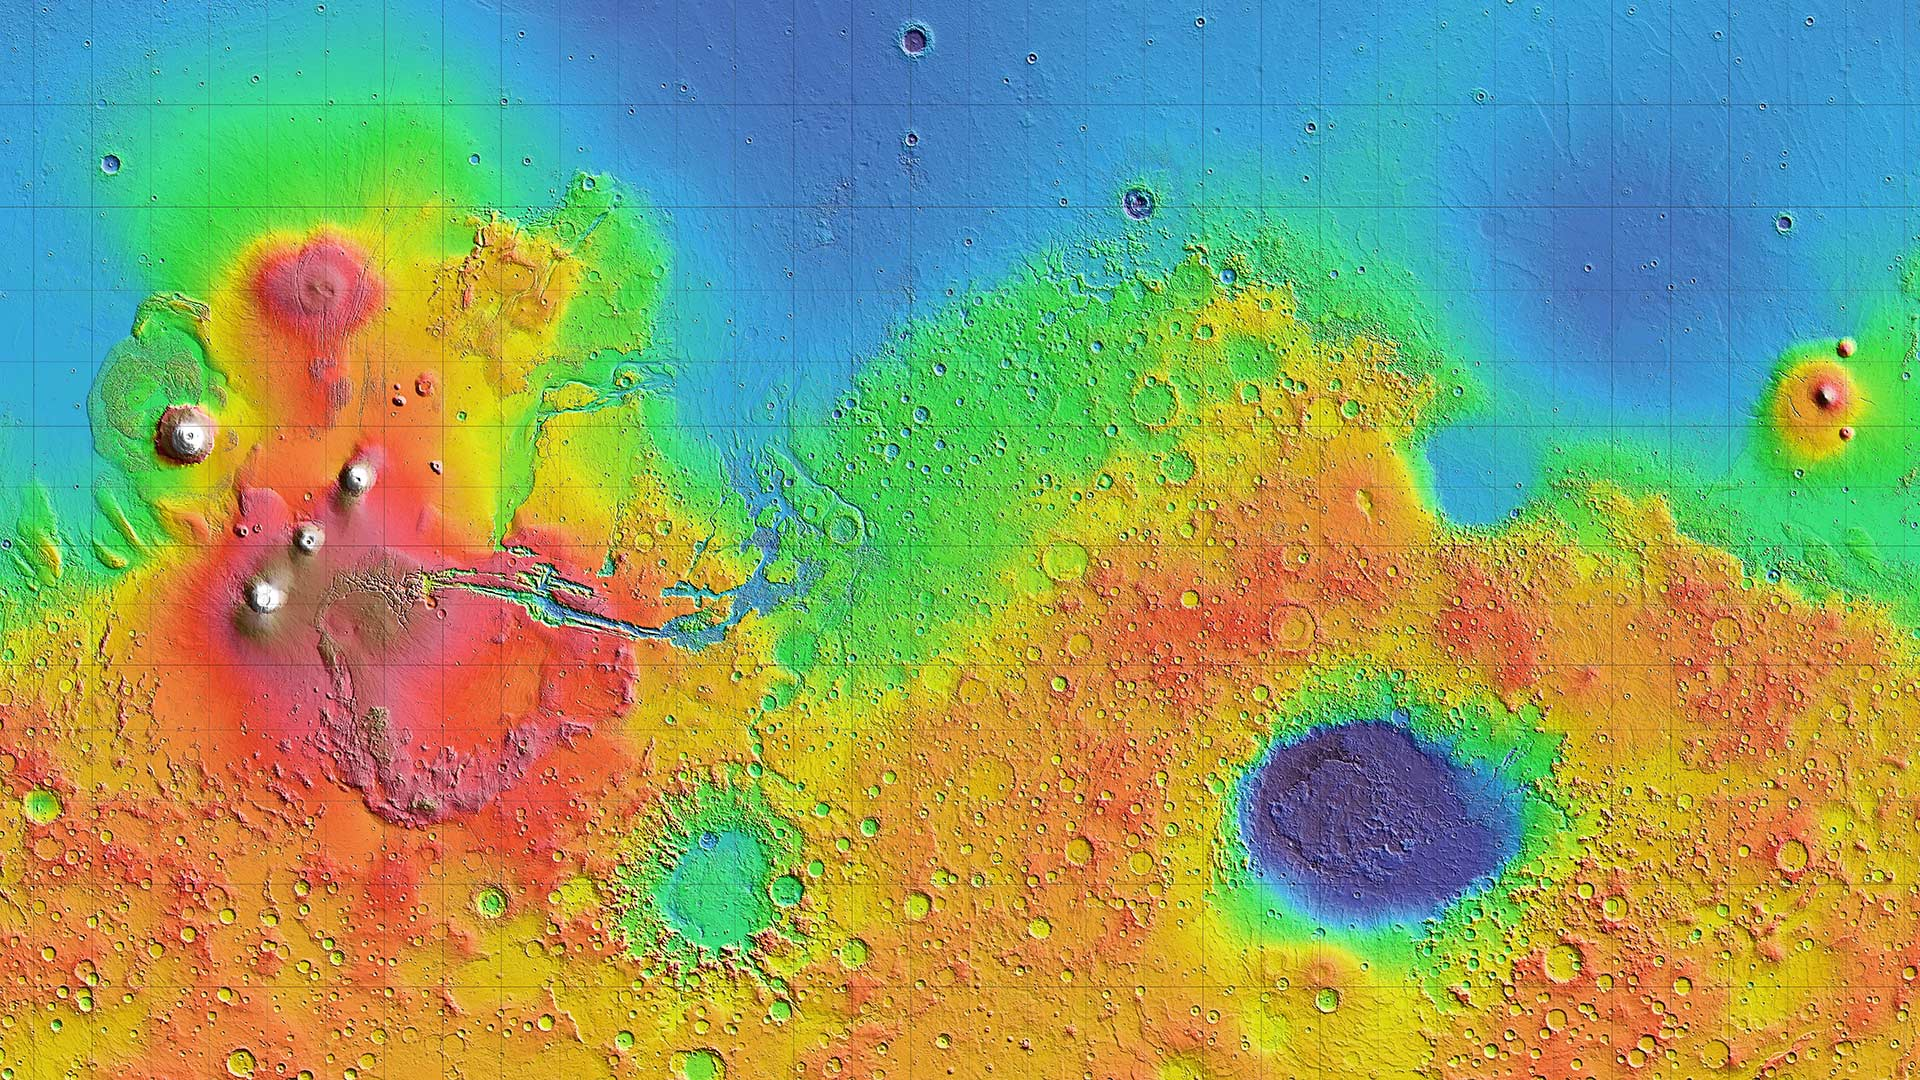 Portion of a NASA topographic shaded relief map of the surface of Mars created using the [Mars Orbiter Laser Altimeter](https://attic.gsfc.nasa.gov/mola/images.html).